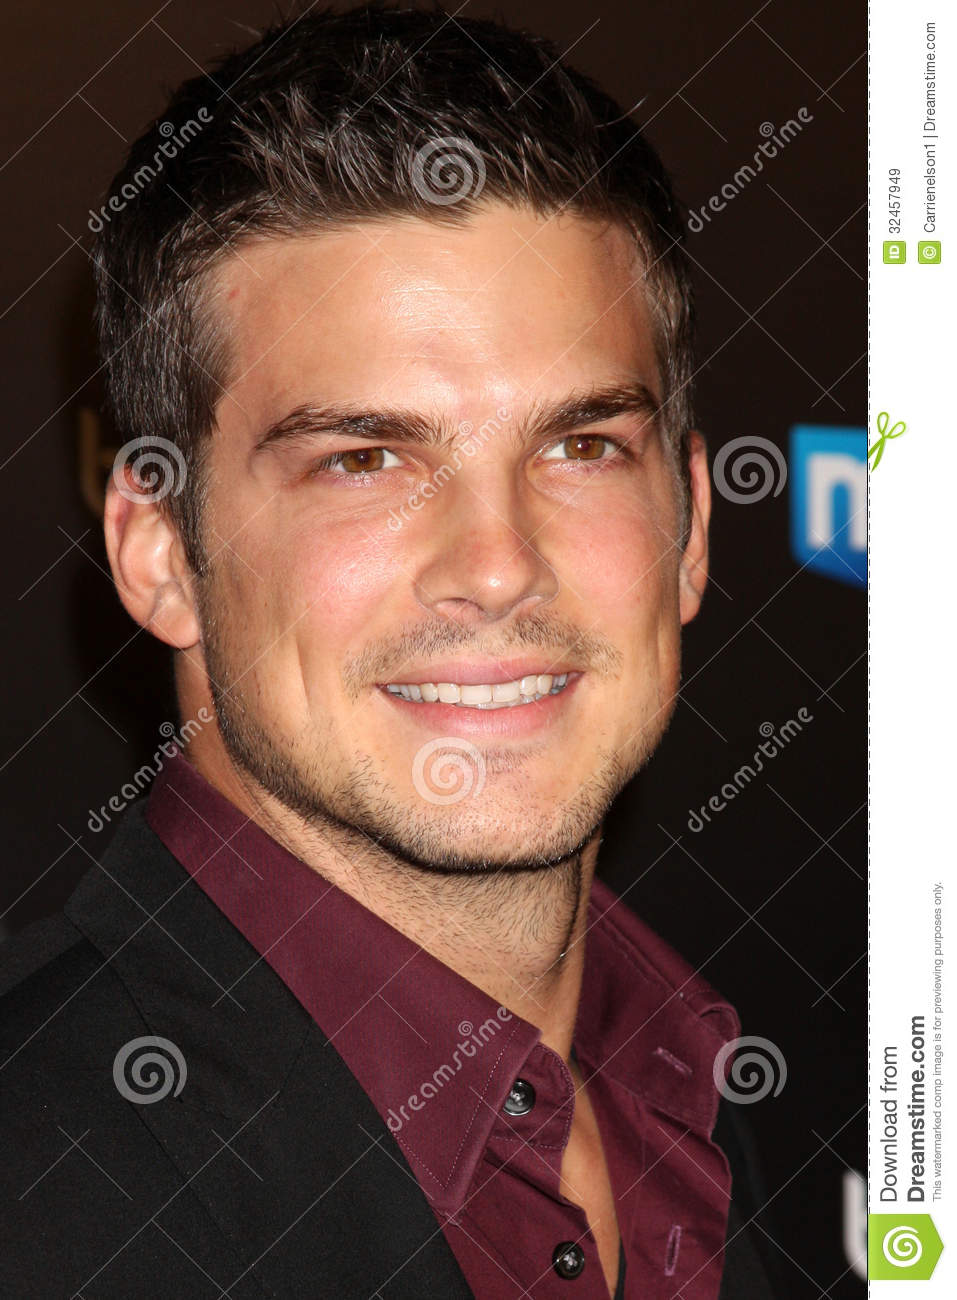 rick malambri and lisa maerick malambri twitter, rick malambri height, rick malambri instagram, rick malambri insta, rick malambri movies, rick malambri and lisa mae baby, rick malambri wife, rick malambri and lisa mae, rick malambri wiki, rick malambri step up 3, rick malambri facebook, rick malambri how i met your mother, rick malambri and sharni vinson, rick malambri taylor swift, rick malambri filmleri, rick malambri and lisa mae wedding, rick malambri net worth, rick malambri shirtless, rick malambri dancing, rick malambri girlfriend